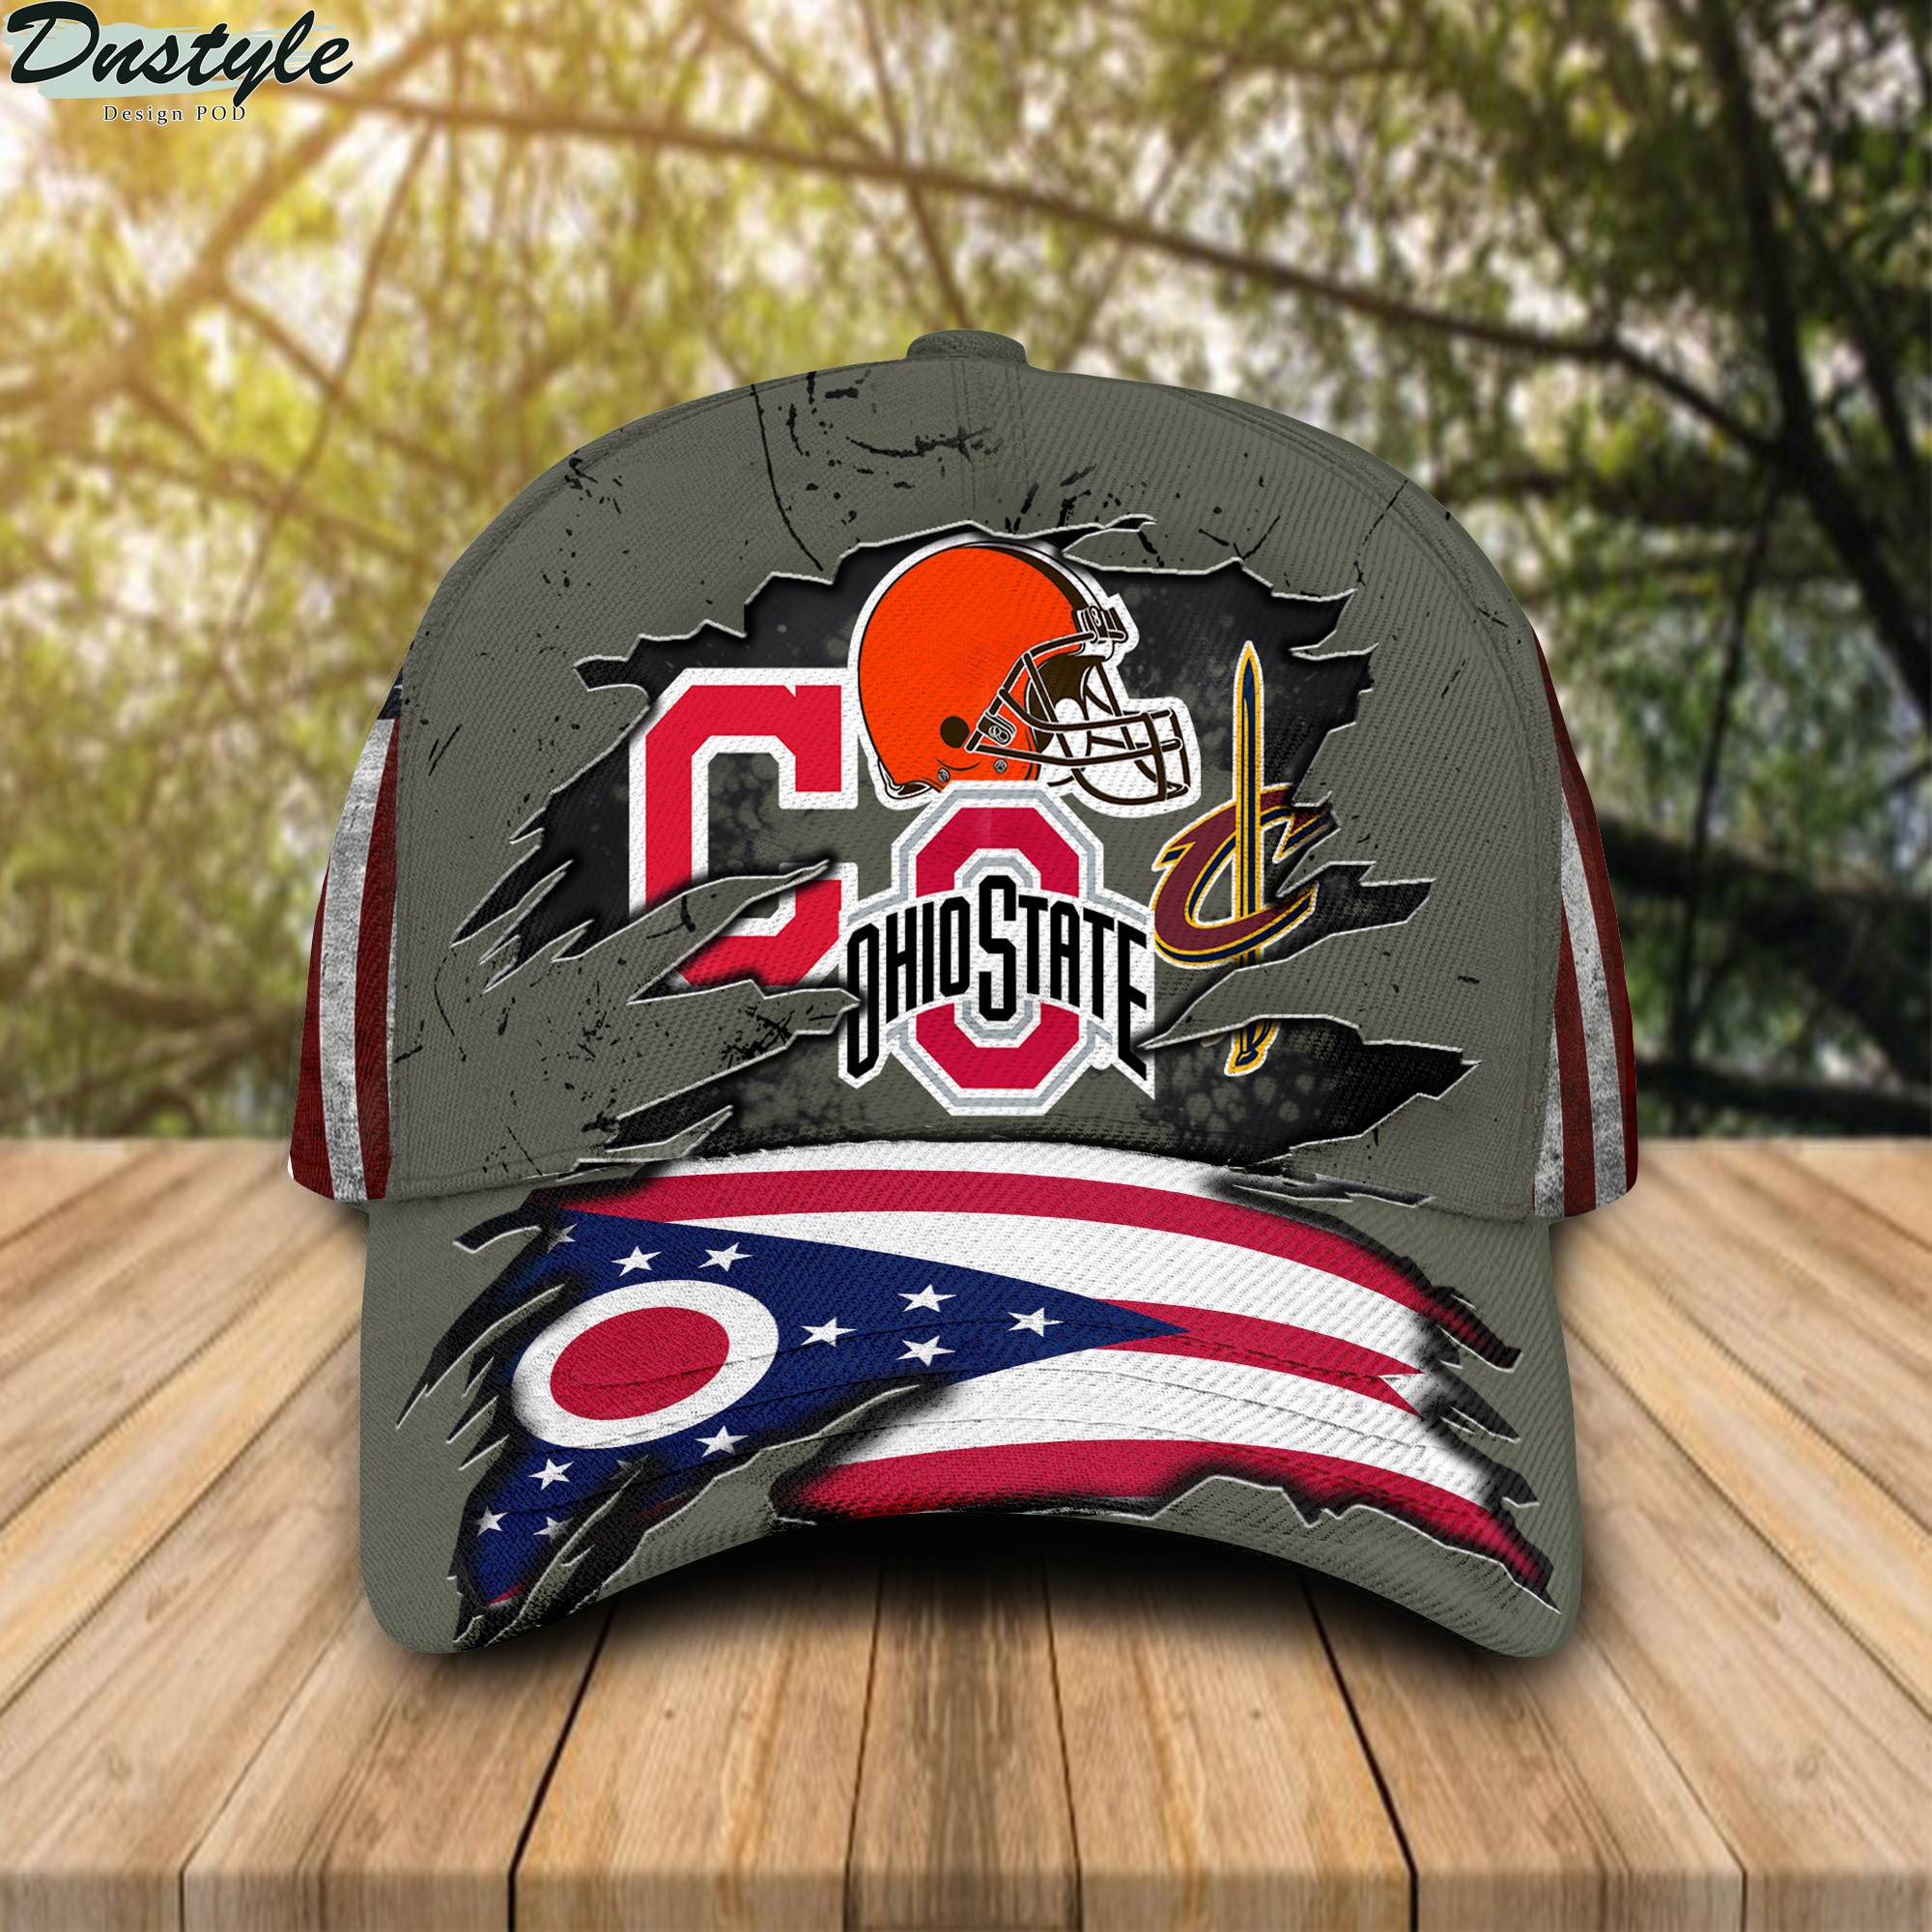 Ohio state buckeys cleveland cavaliers cleveland indians cleveland browns cap